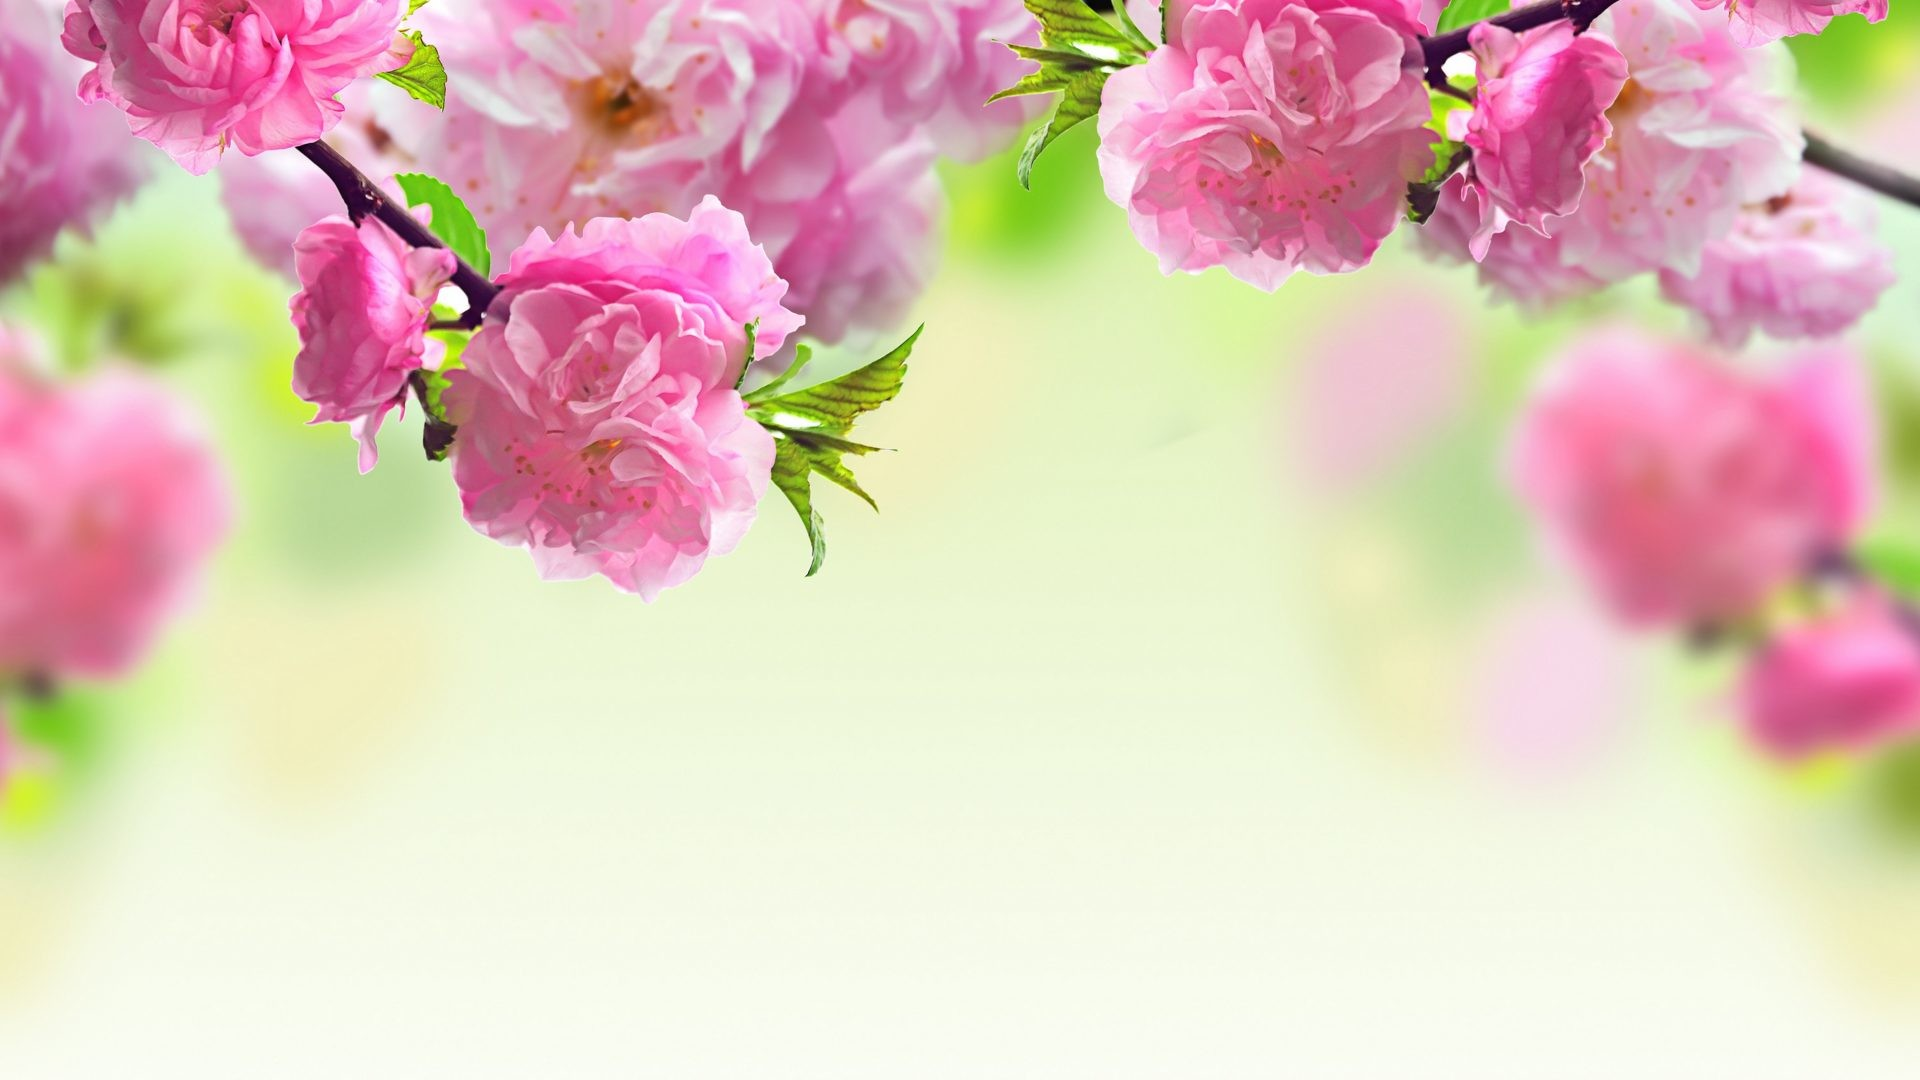 Hd Wallpaper Pink Flowers 72 Images